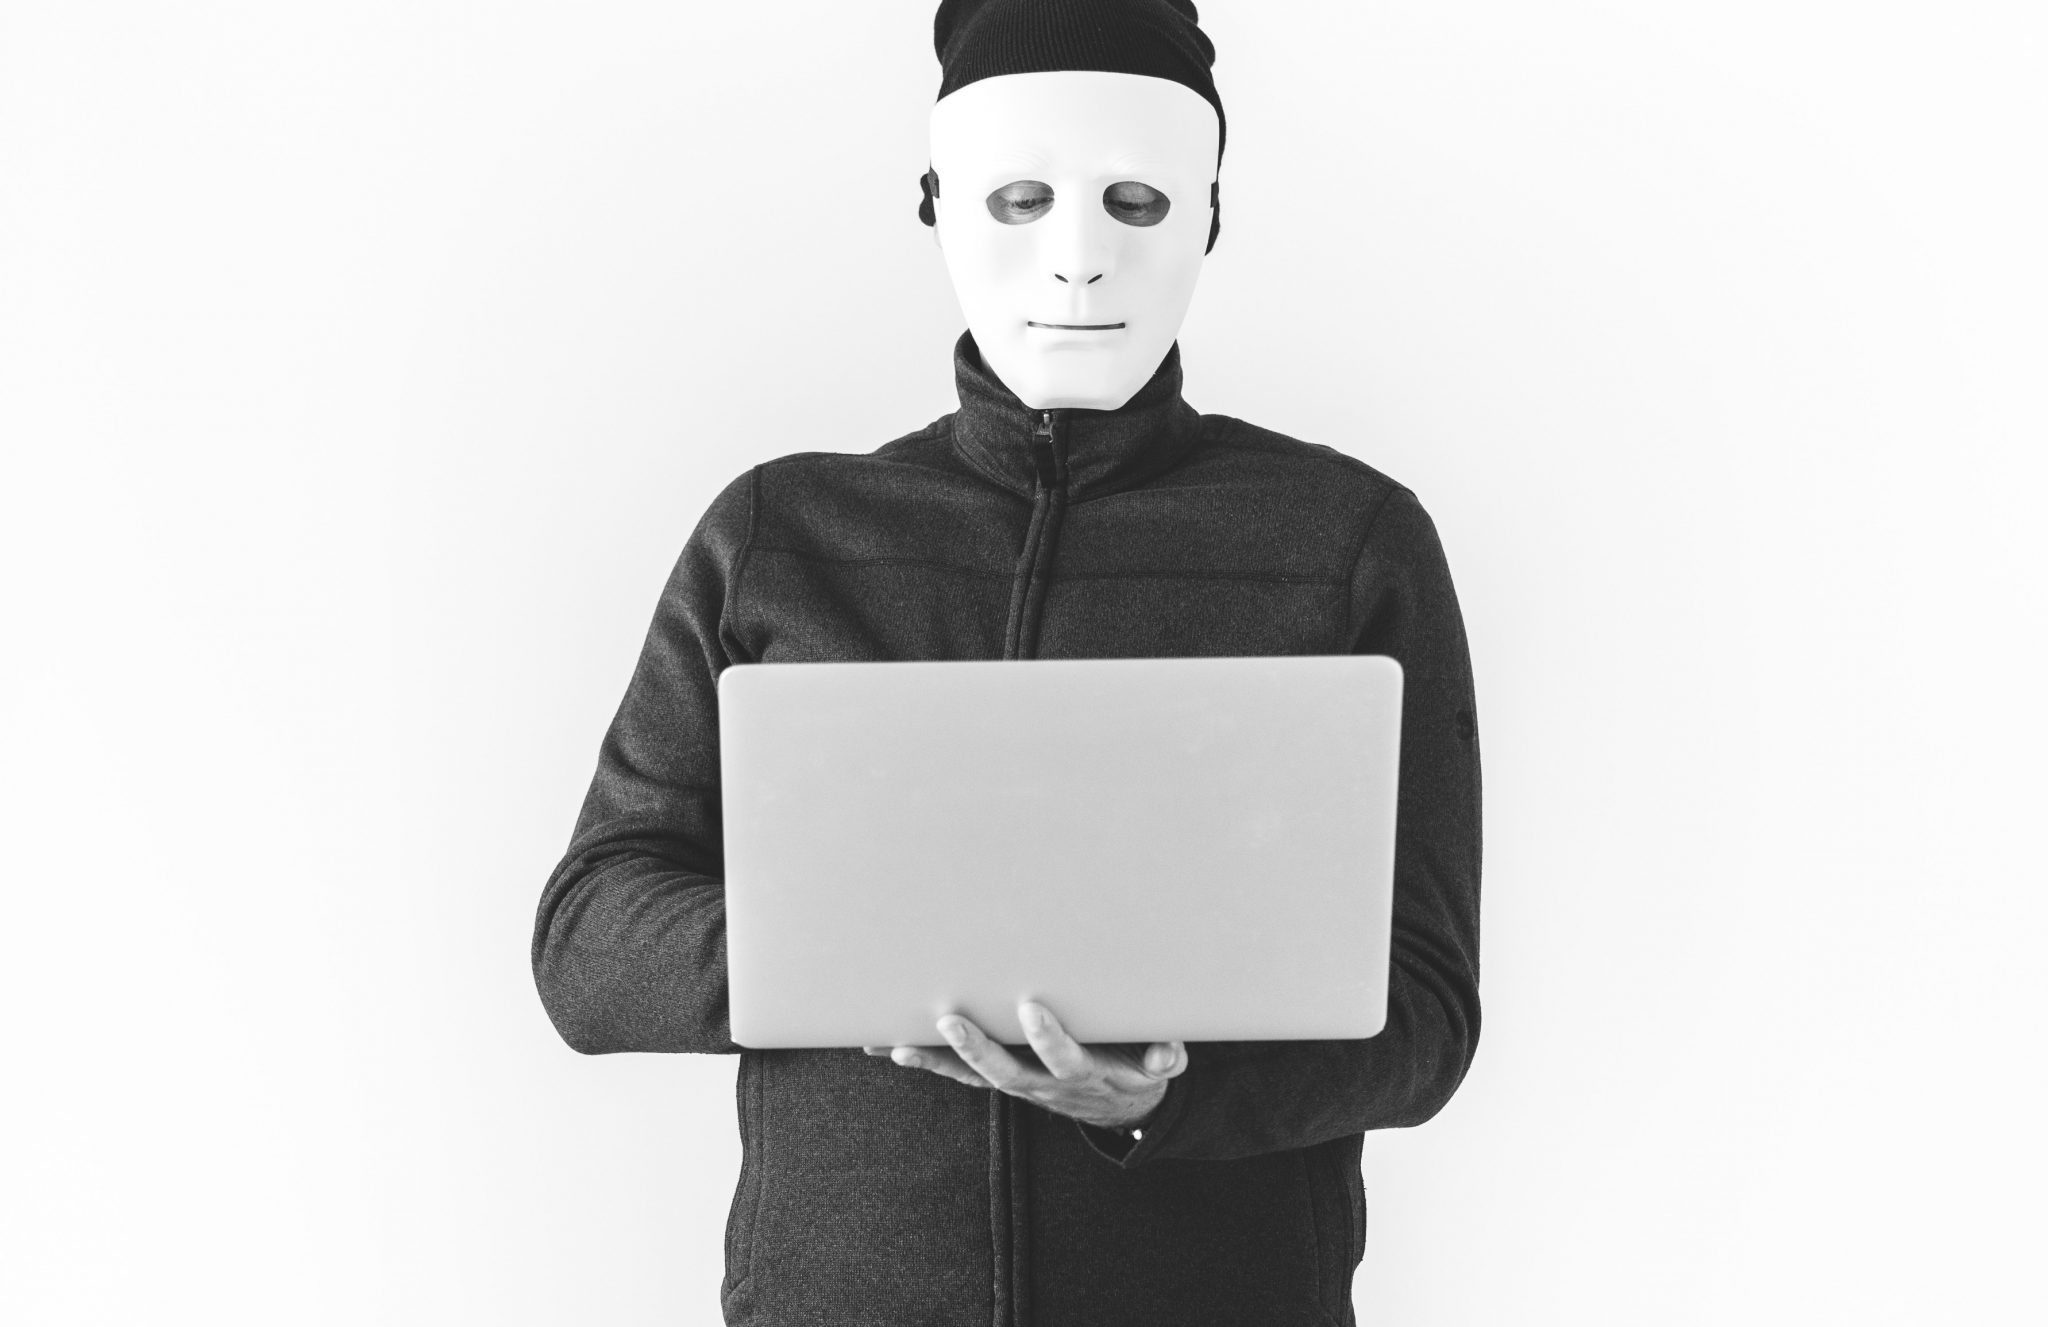 Be Careful with with Some SaaS Vendors who Keep Your Data Hostage